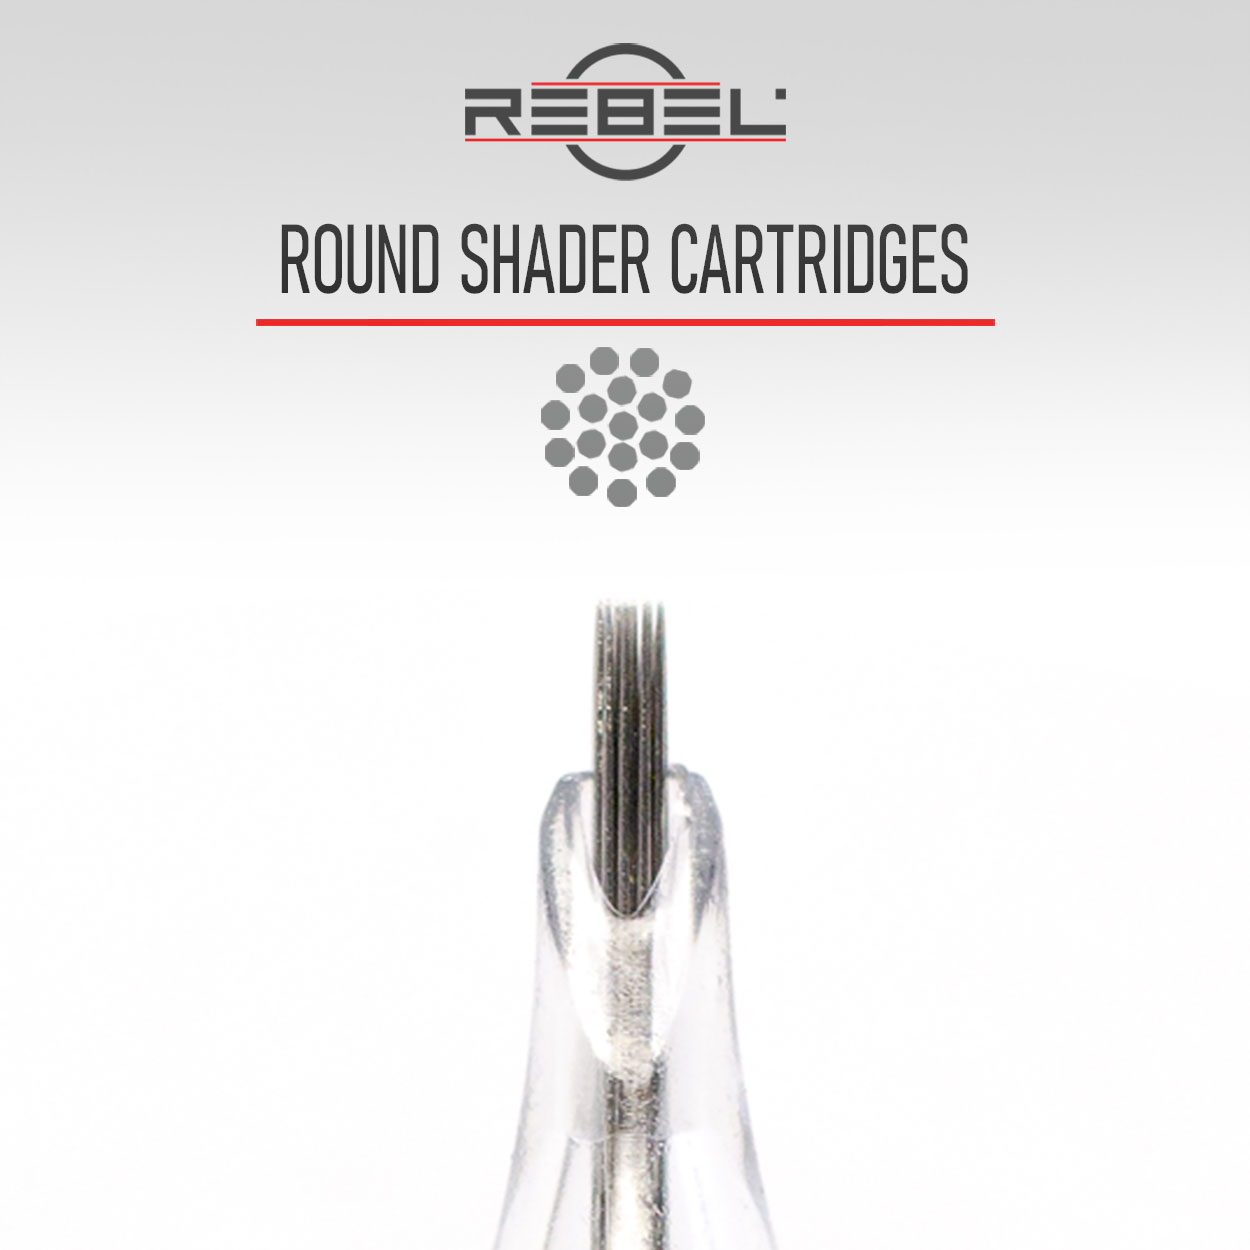 Round shader needles - Precision tattoo cartridge configurations - Tattoo Equipment - REBEL